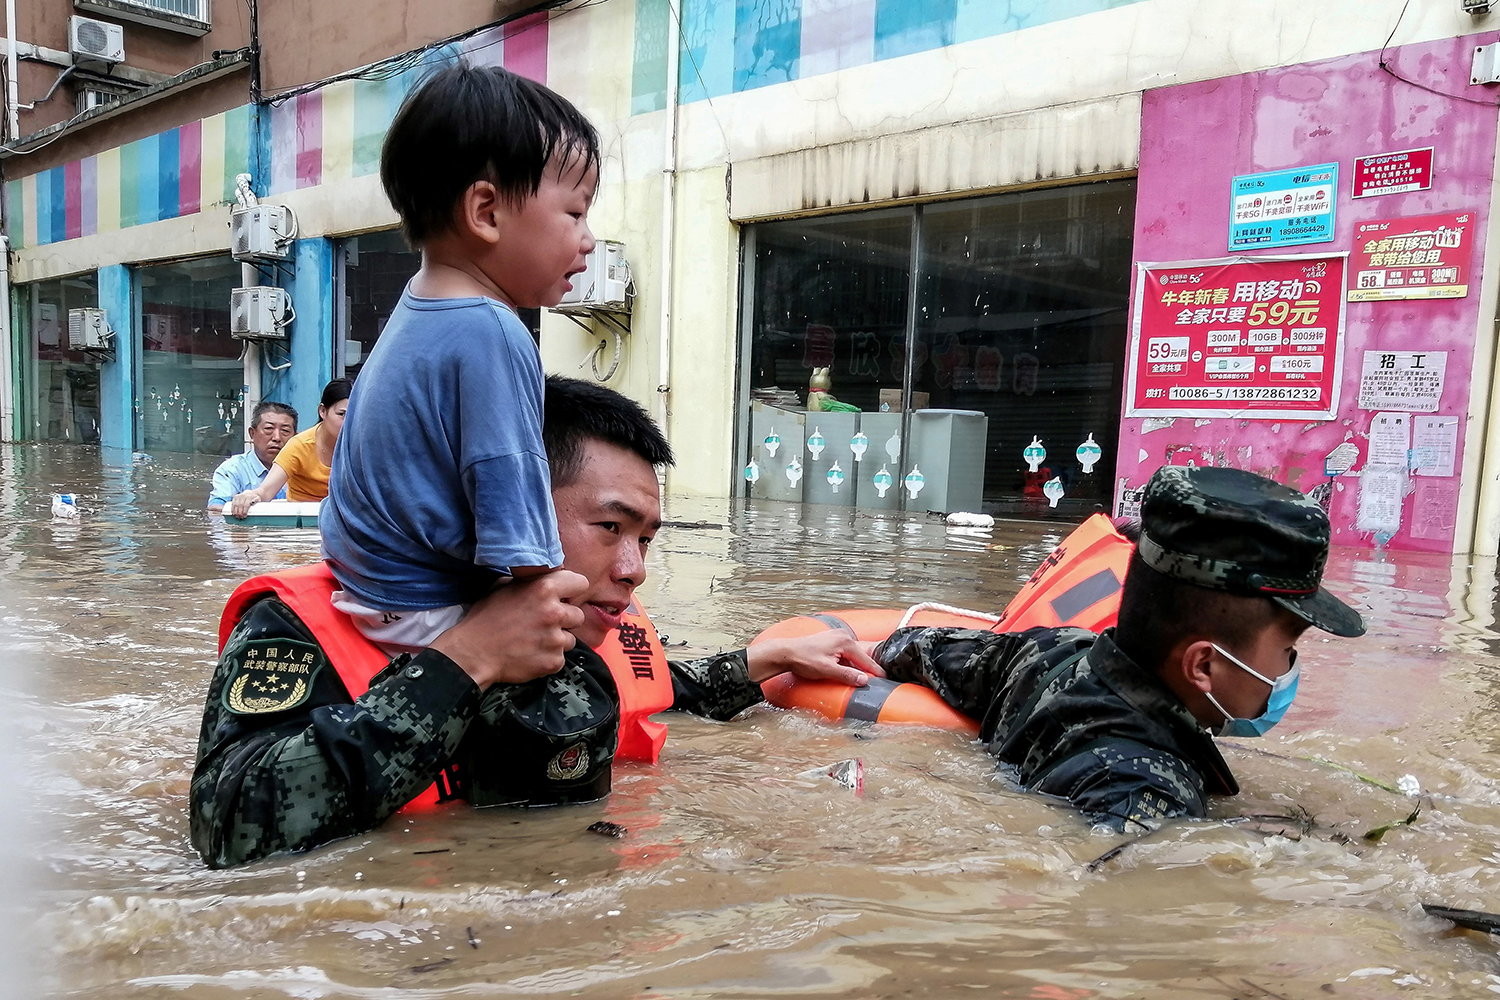 Men rescue boy in floodwaters in China